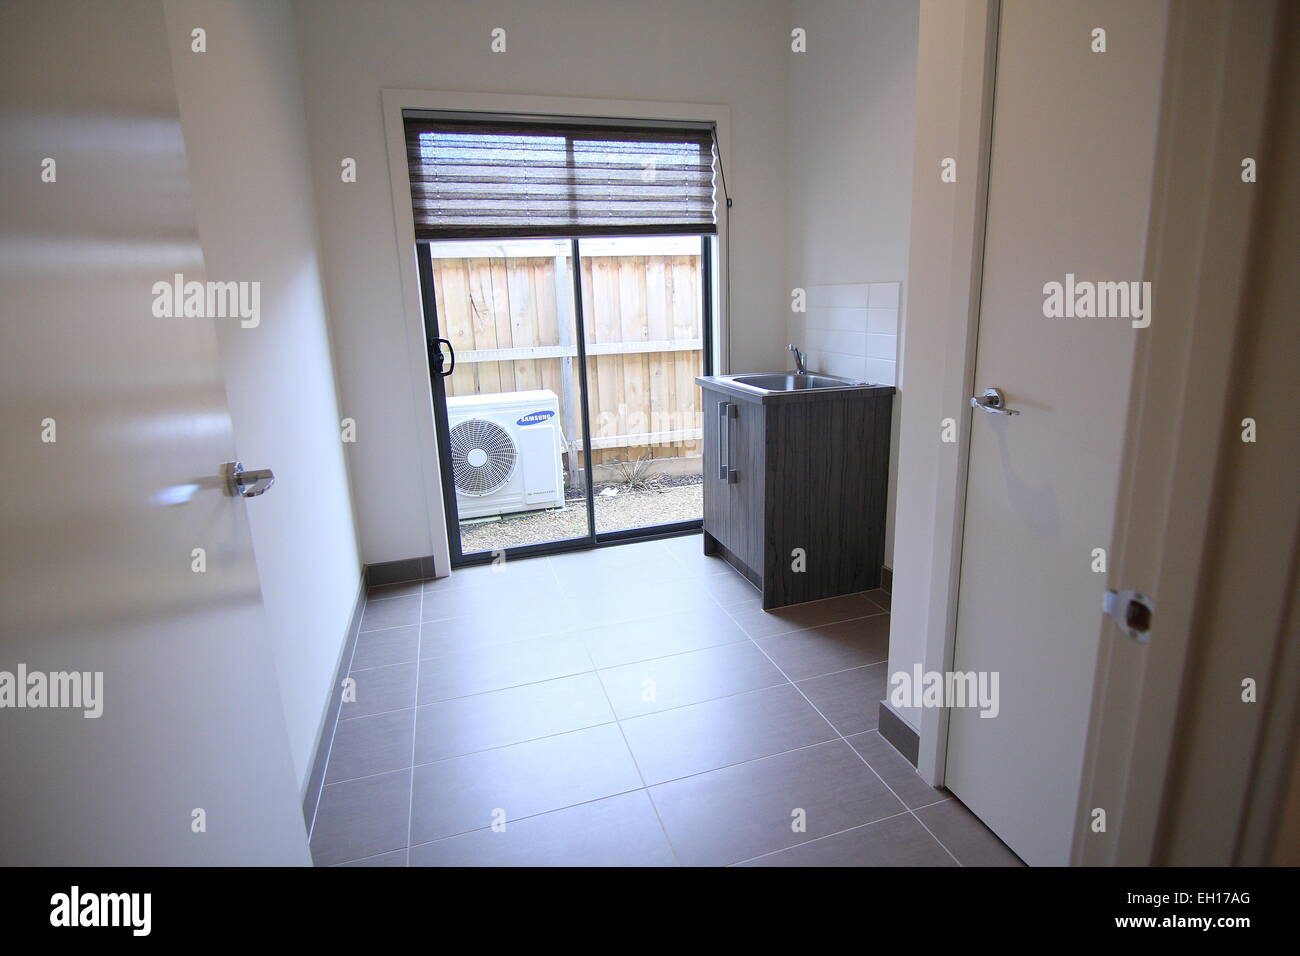 Modern laundry room with tile floor and glass door Stock Photo ...